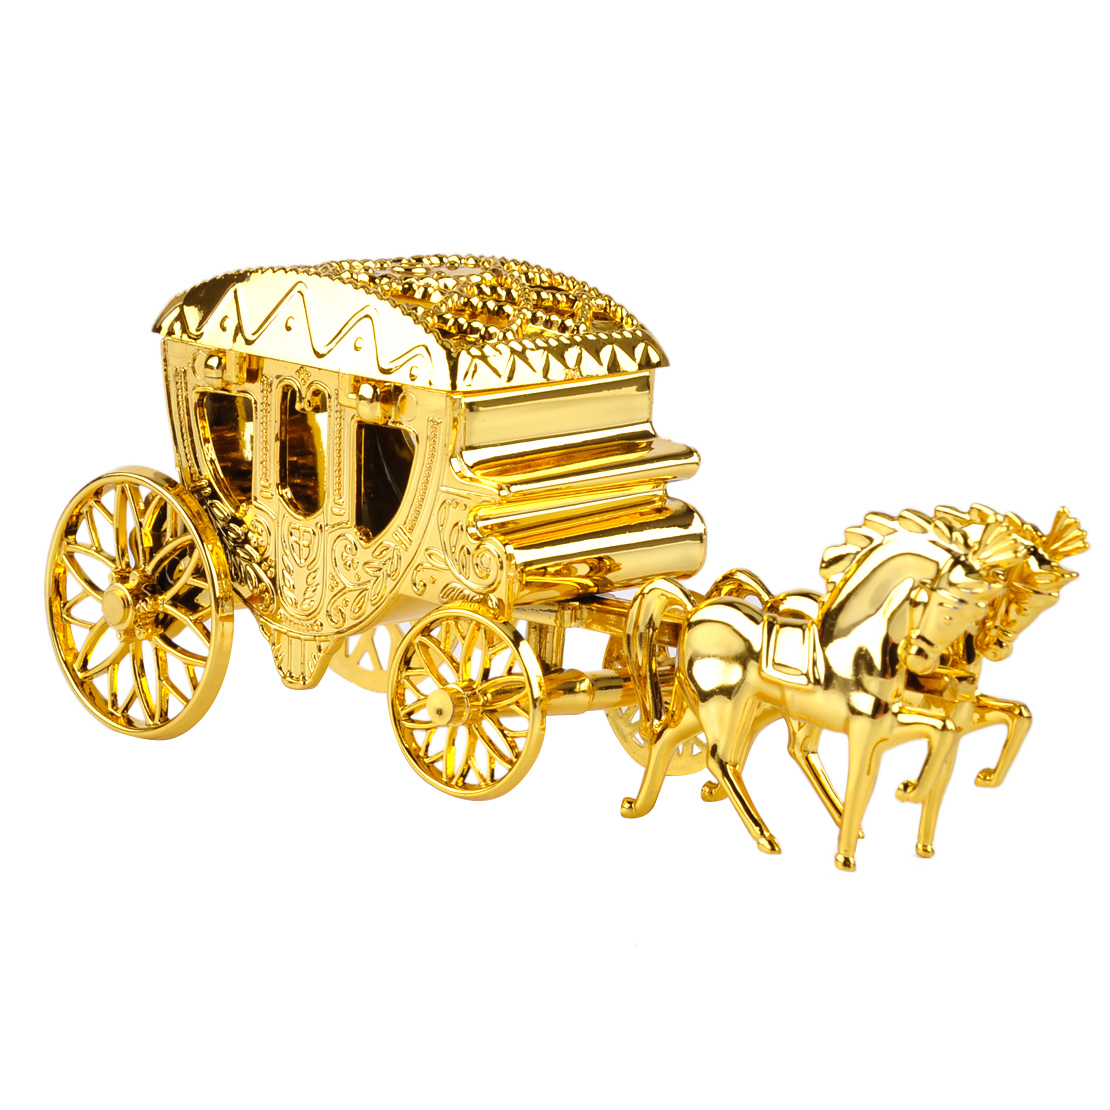 Carriage clipart royal carriage. Candy sweet box chocolate